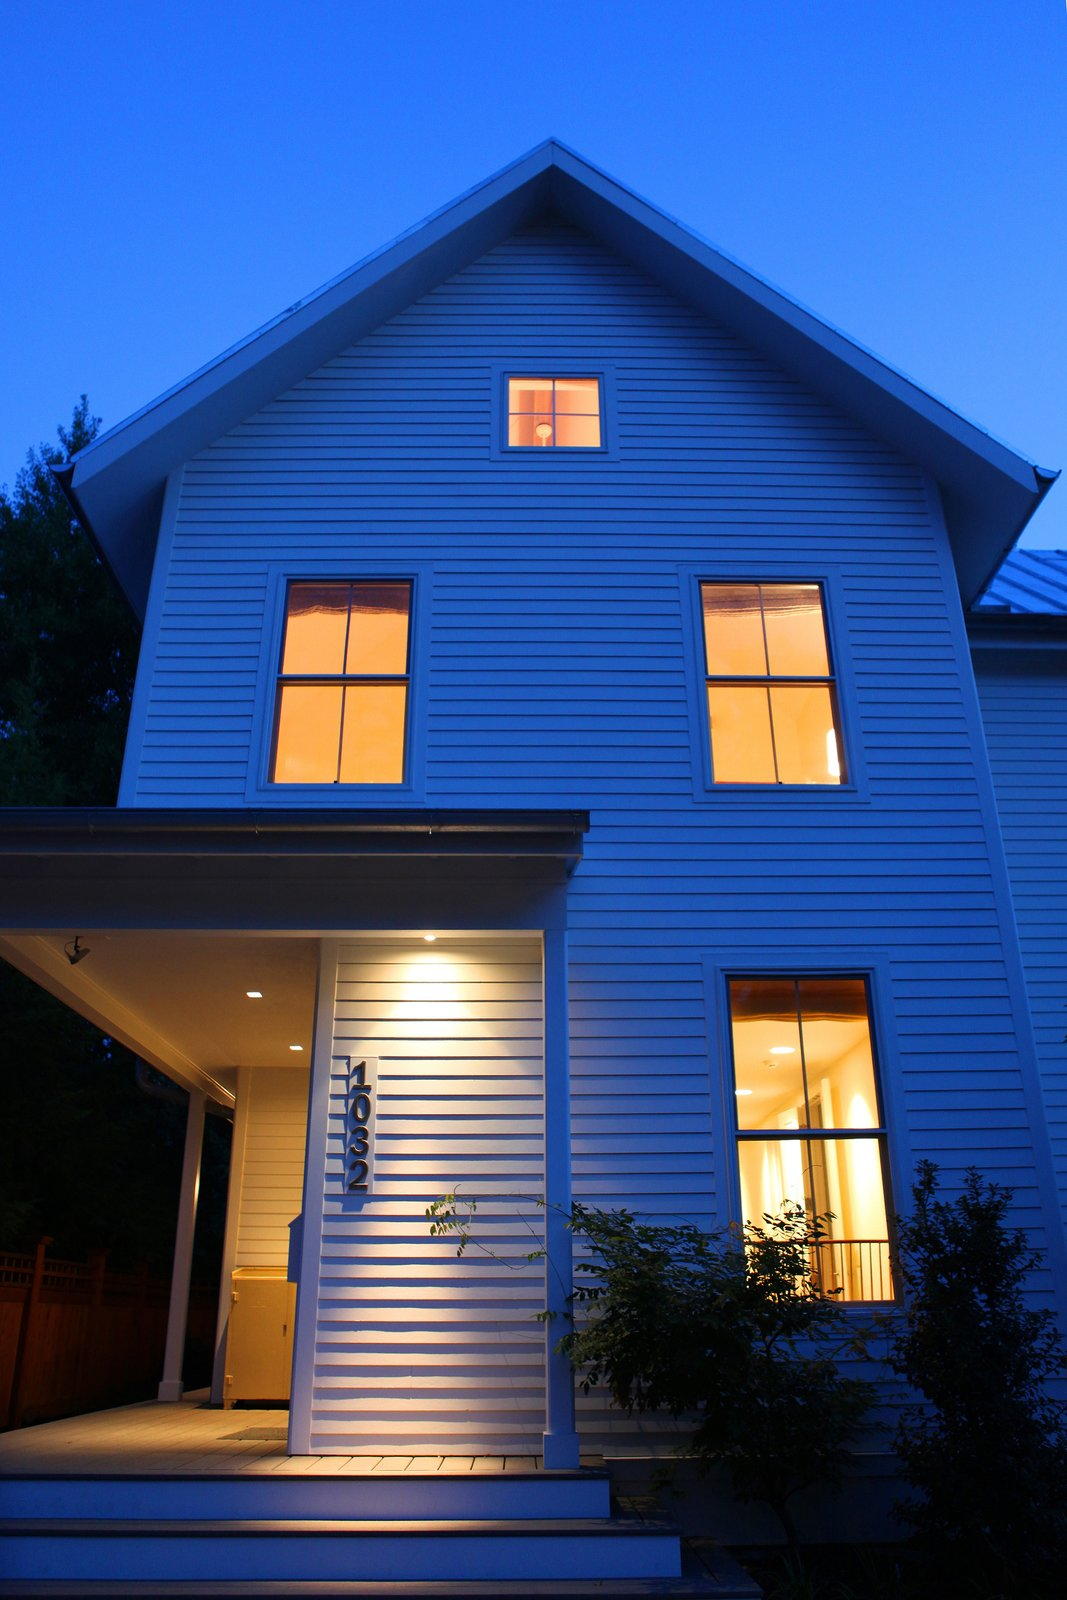 Exterior, Metal Roof Material, House Building Type, Gable RoofLine, and Farmhouse Building Type  Urban Farmhouse